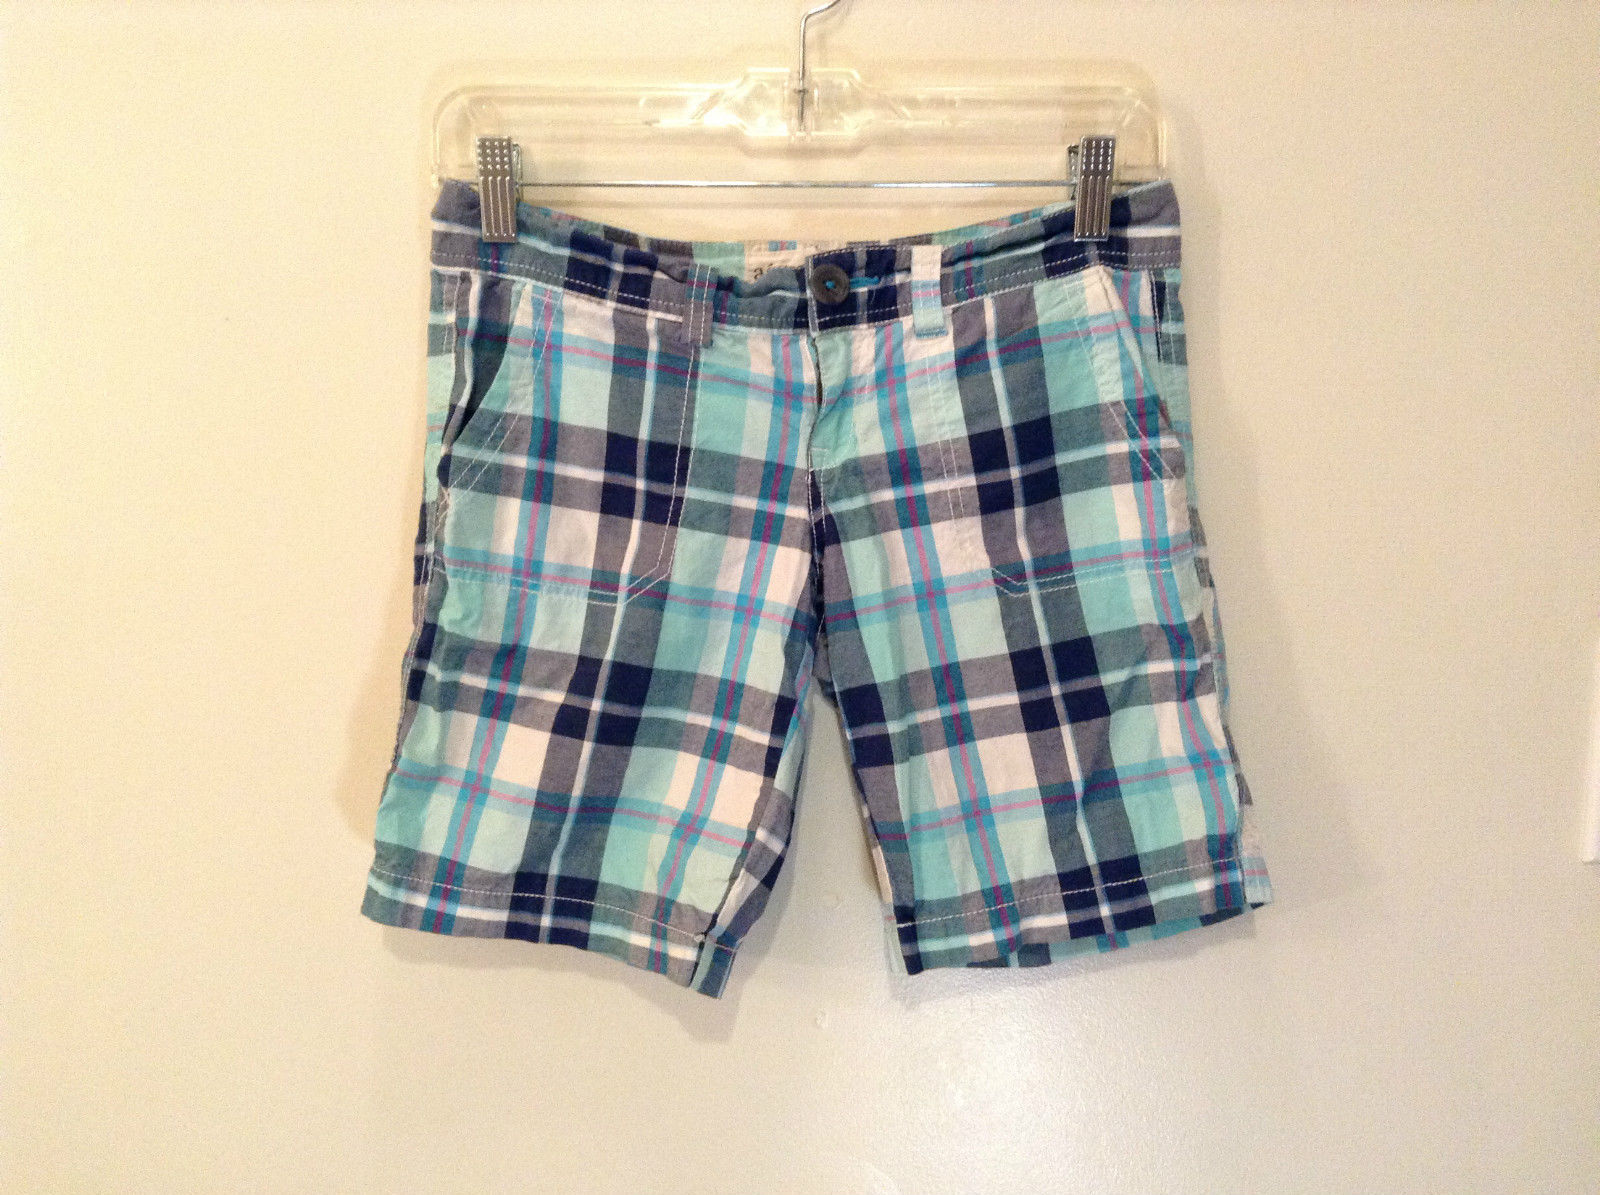 Aeropostale Turquoise Blue Plaid Shorts Size 1 to 2 Front and Back Pockets